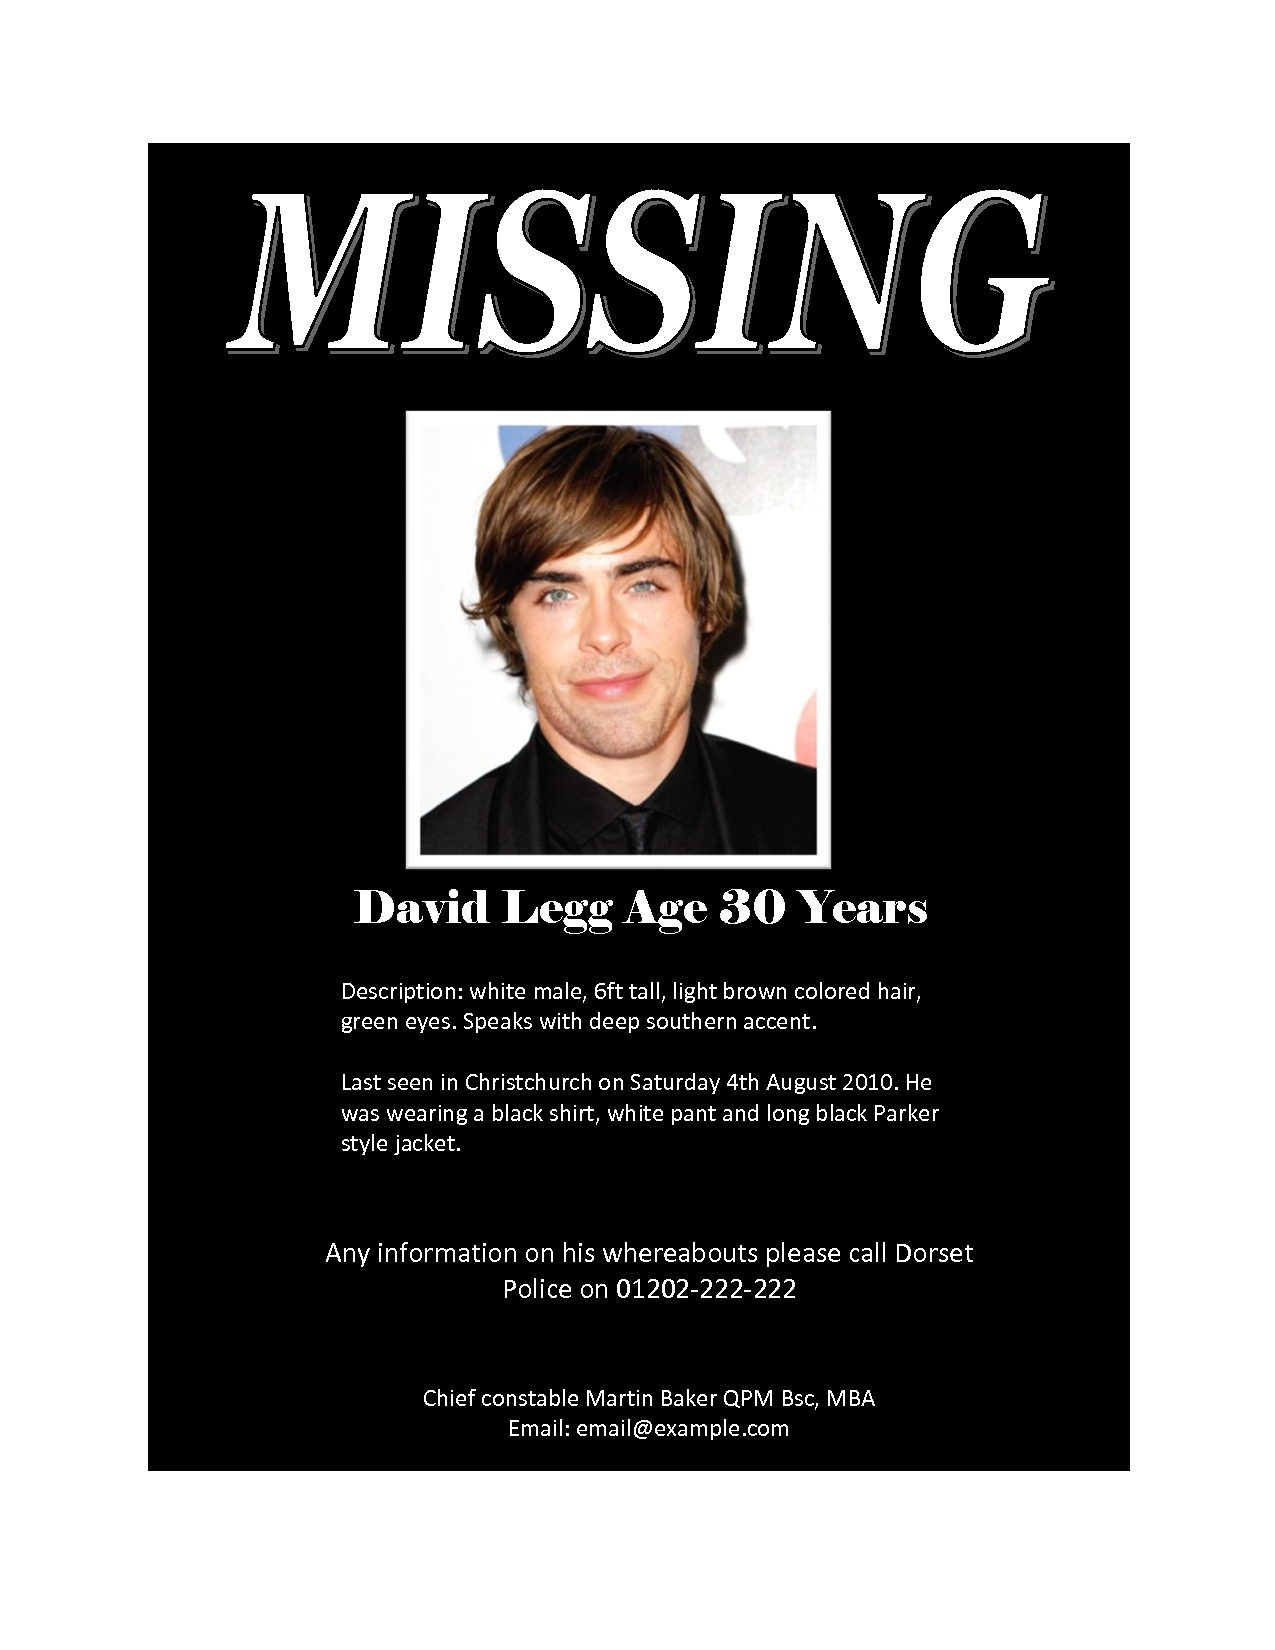 Missing person posters examples